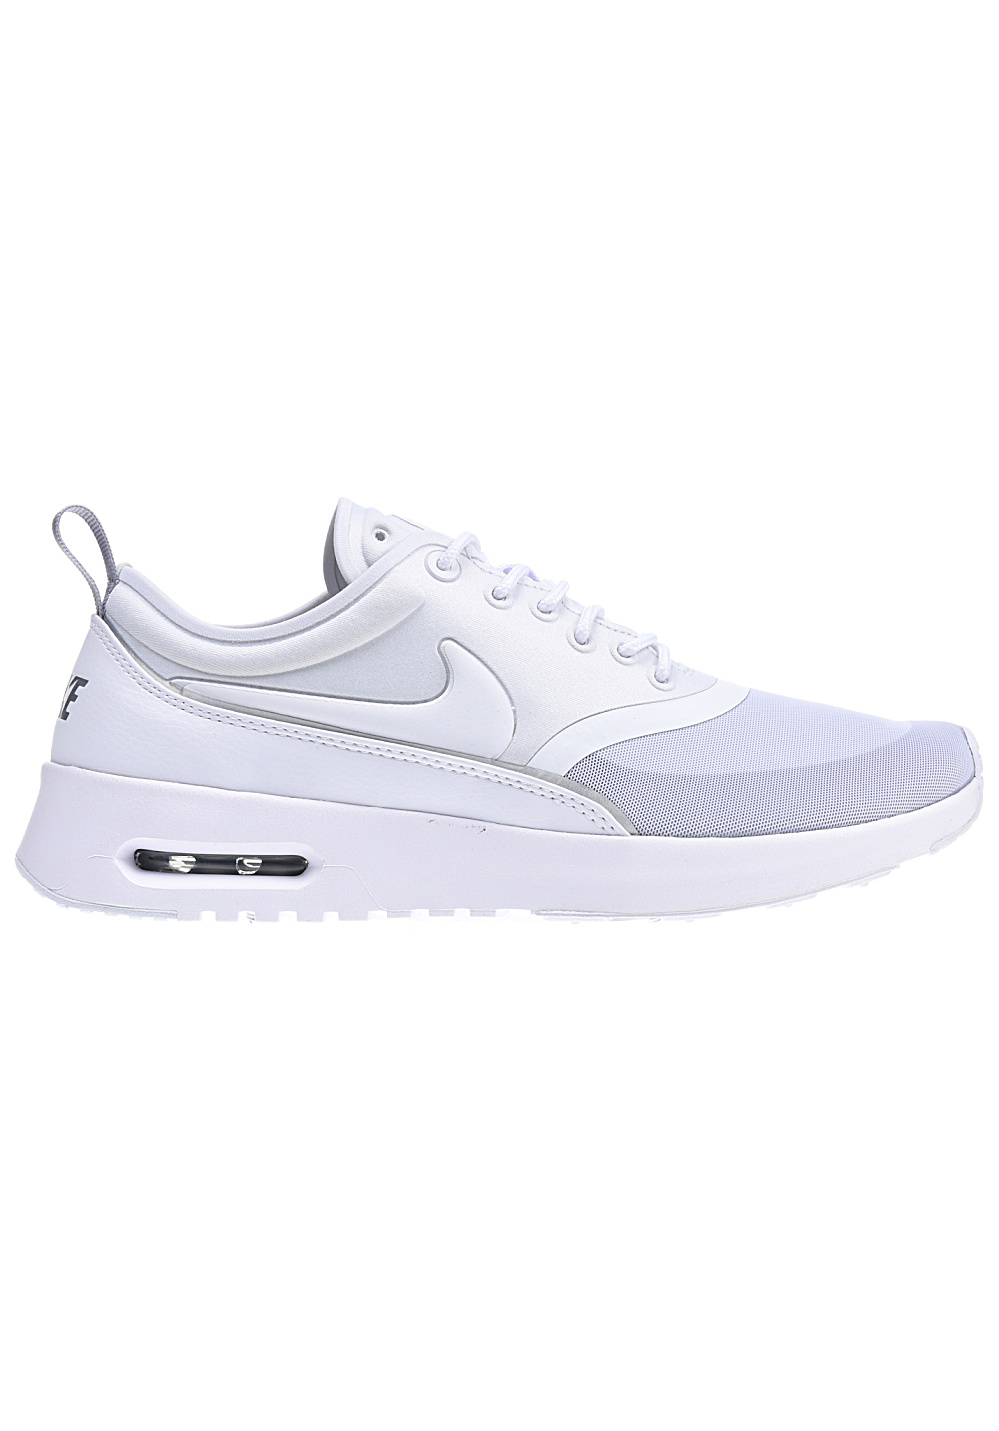 new arrival a1d74 692c3 NIKE SPORTSWEAR Air Max Thea Ultra - Sneakers for Women - White - Planet  Sports